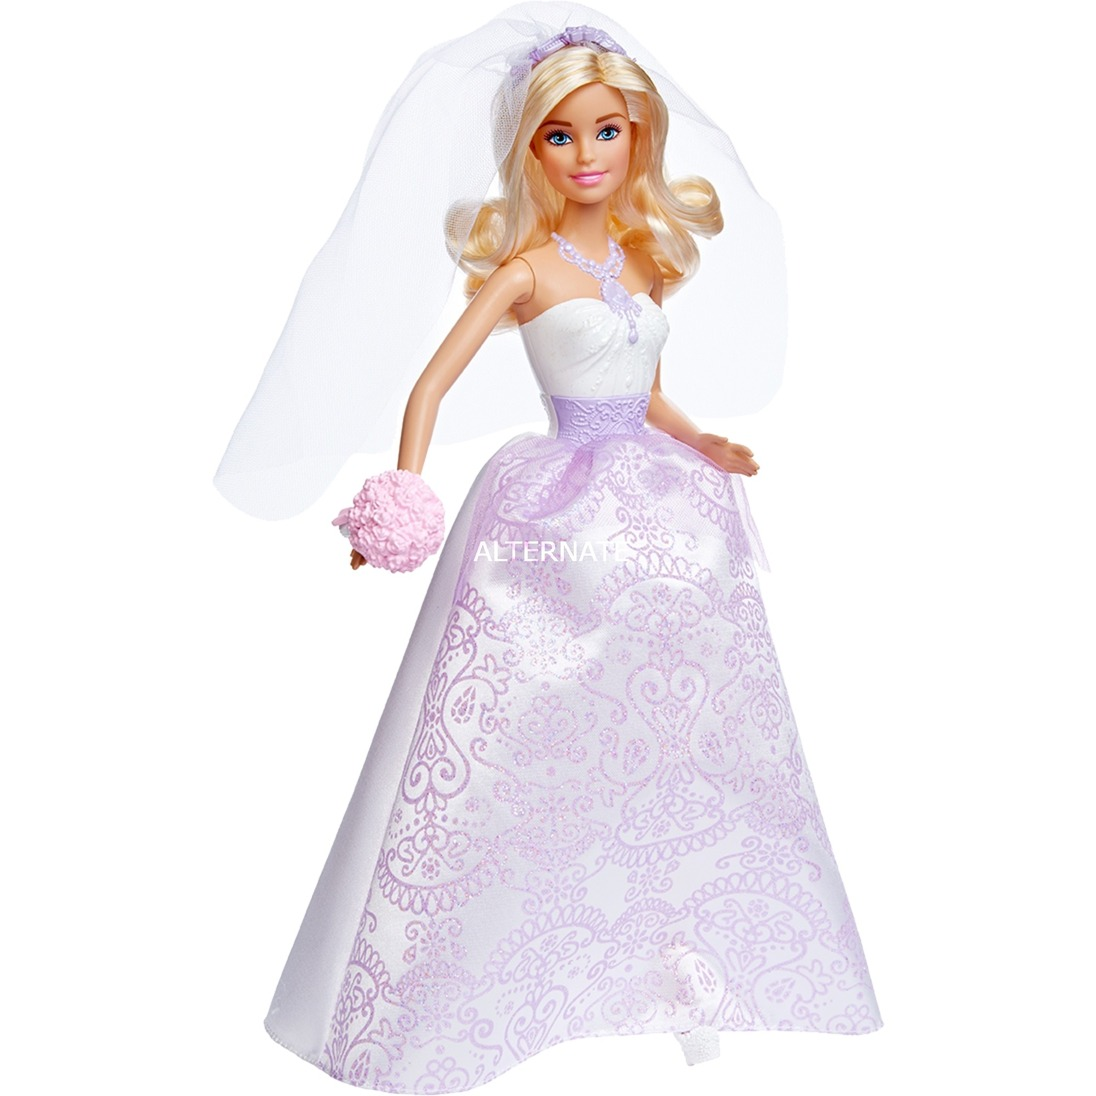 barbie-royal-brudedukke-bride-dnc35